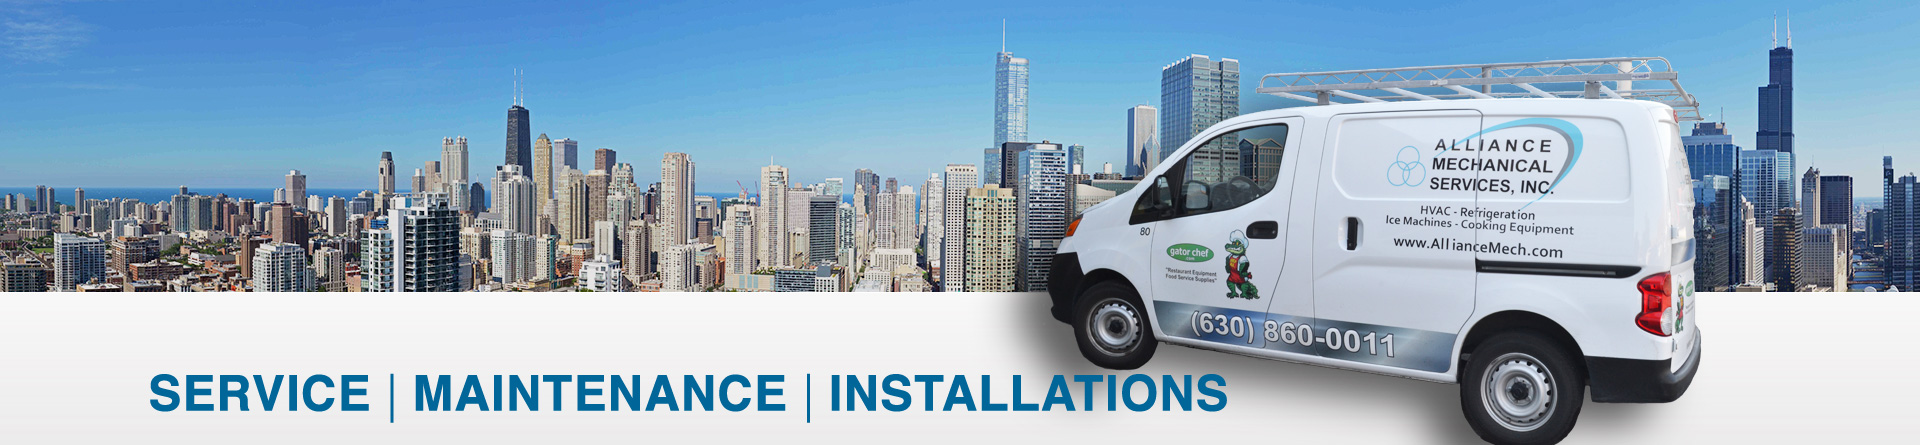 Alliance Mechanical Services have a fleet of over thirty service truck that provide service throughout Northern Illinois